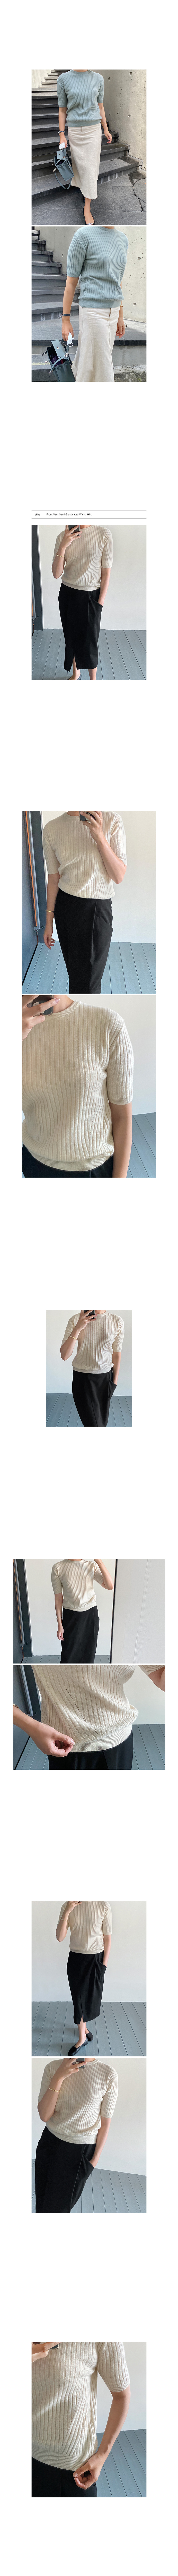 Short Sleeve Rib Knit Top|